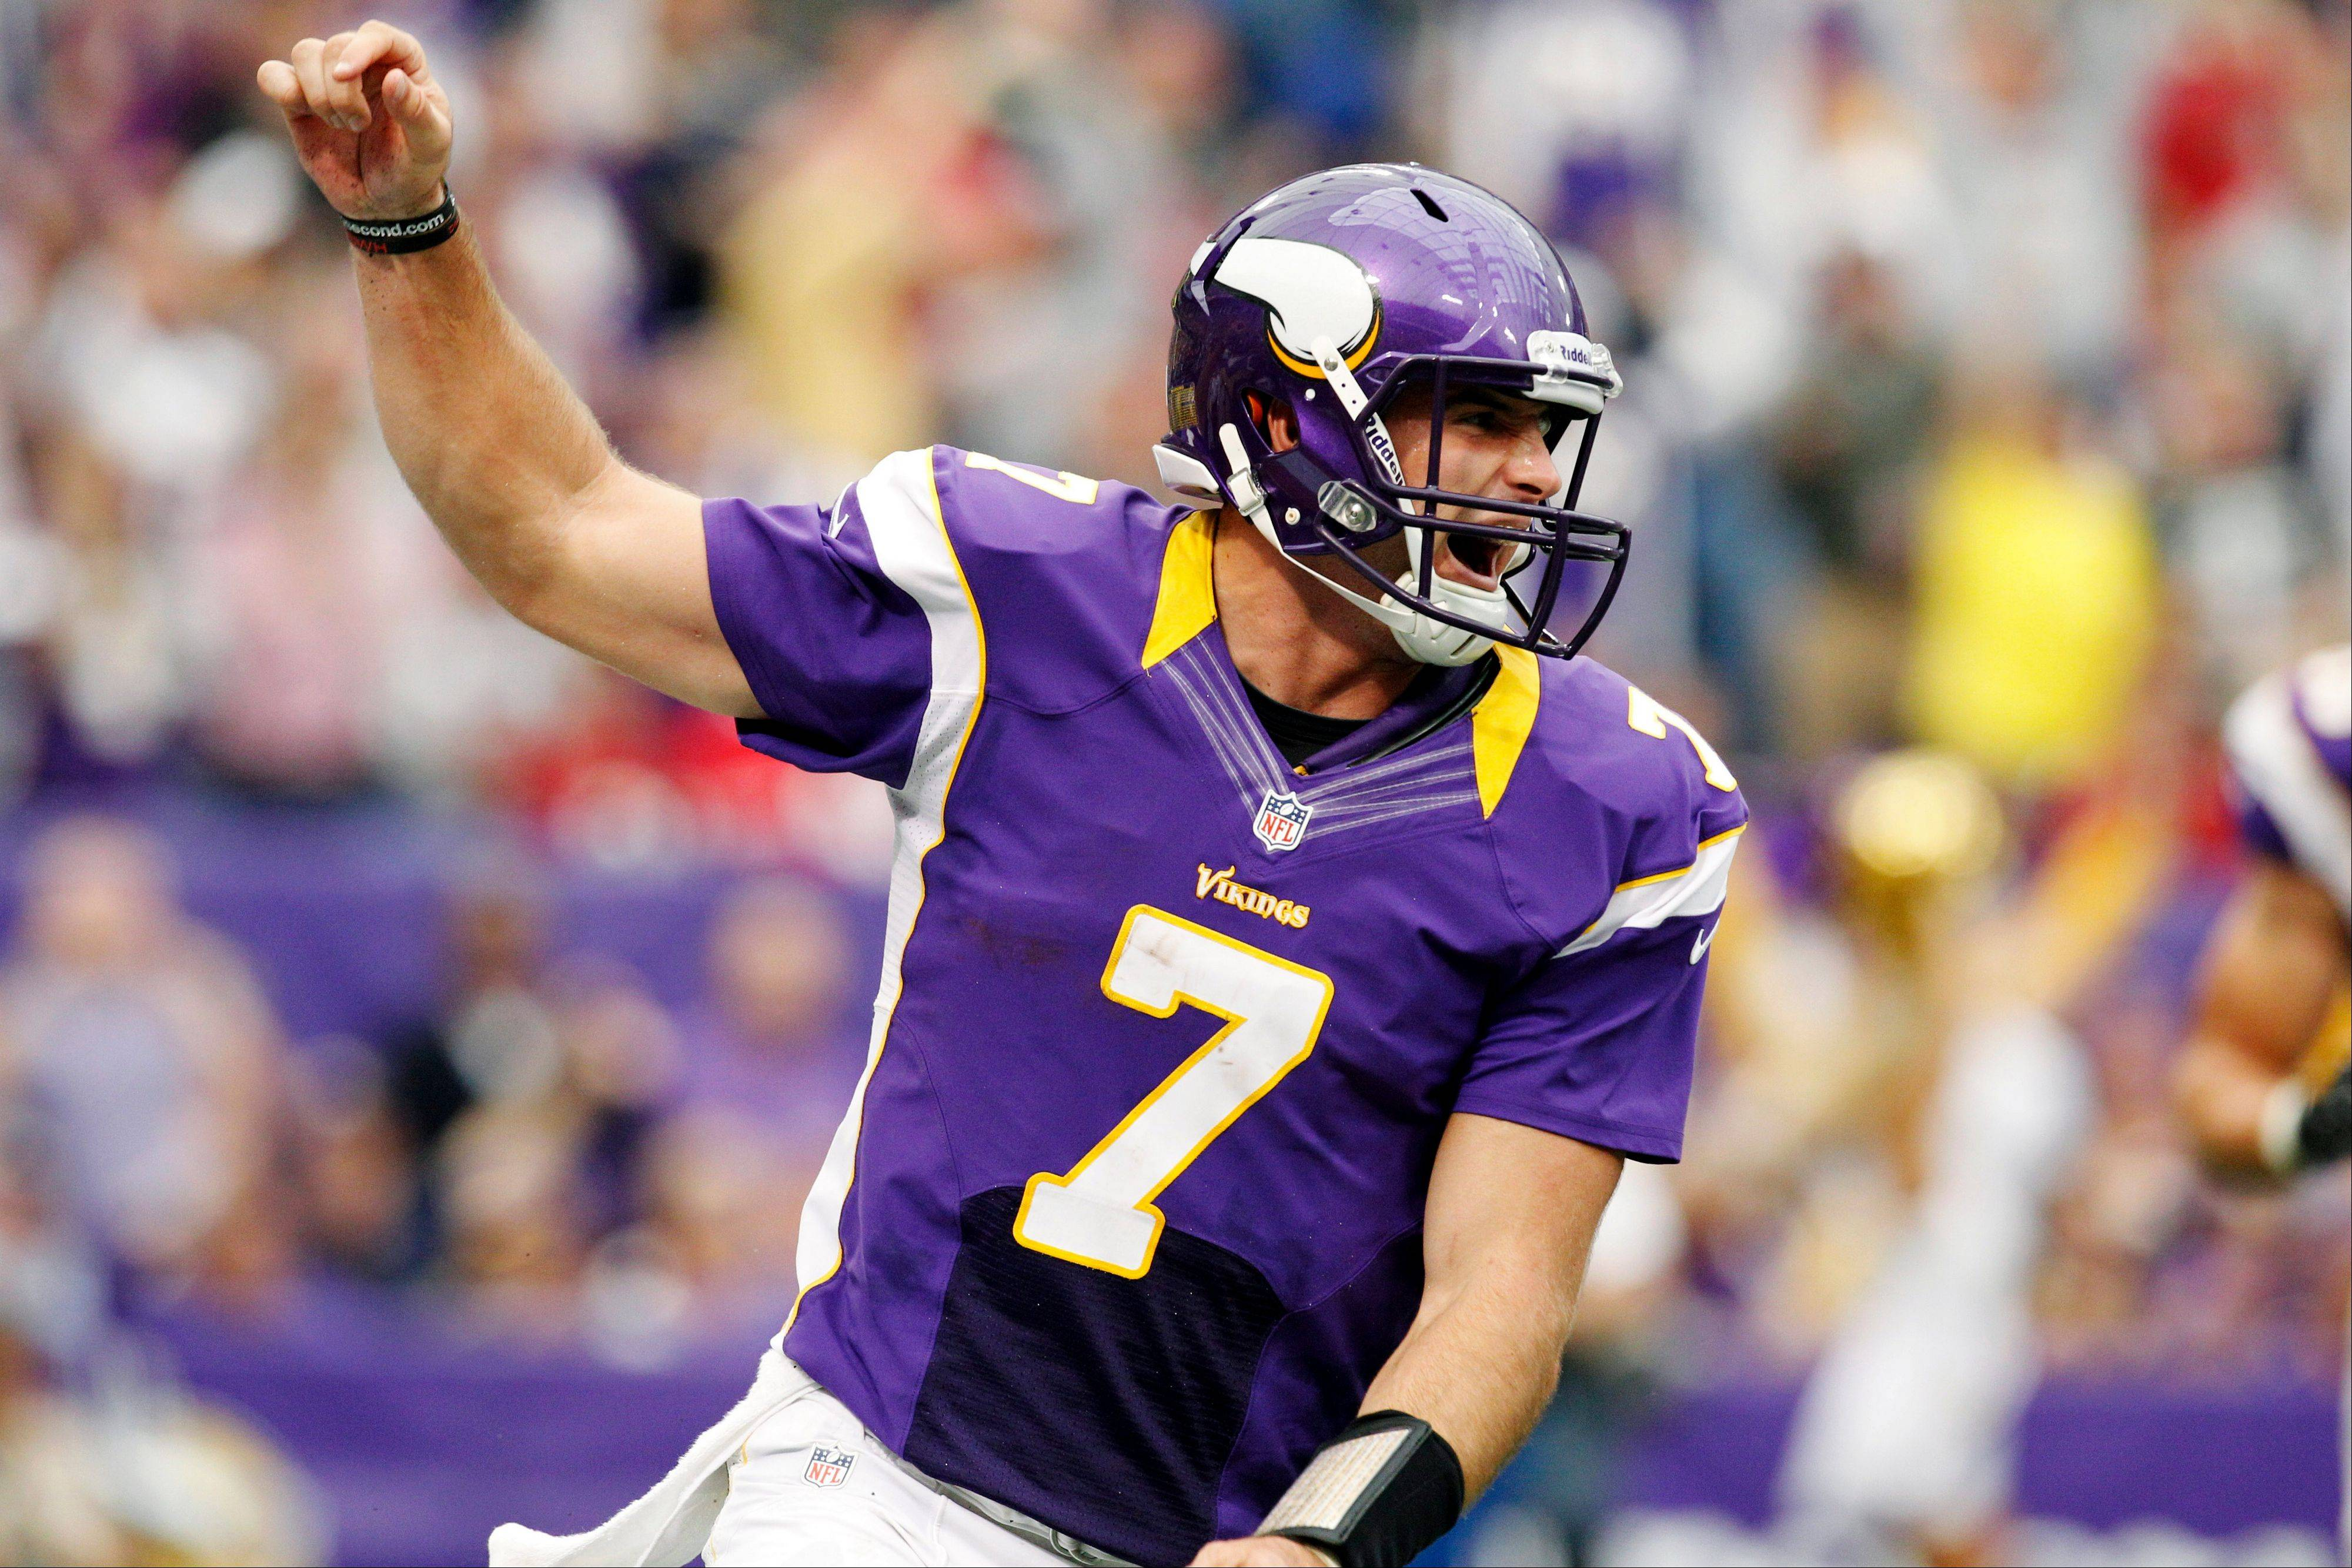 Minnesota quarterback Christian Ponder celebrates his touchdown run in the first half Sunday at home against San Francisco.